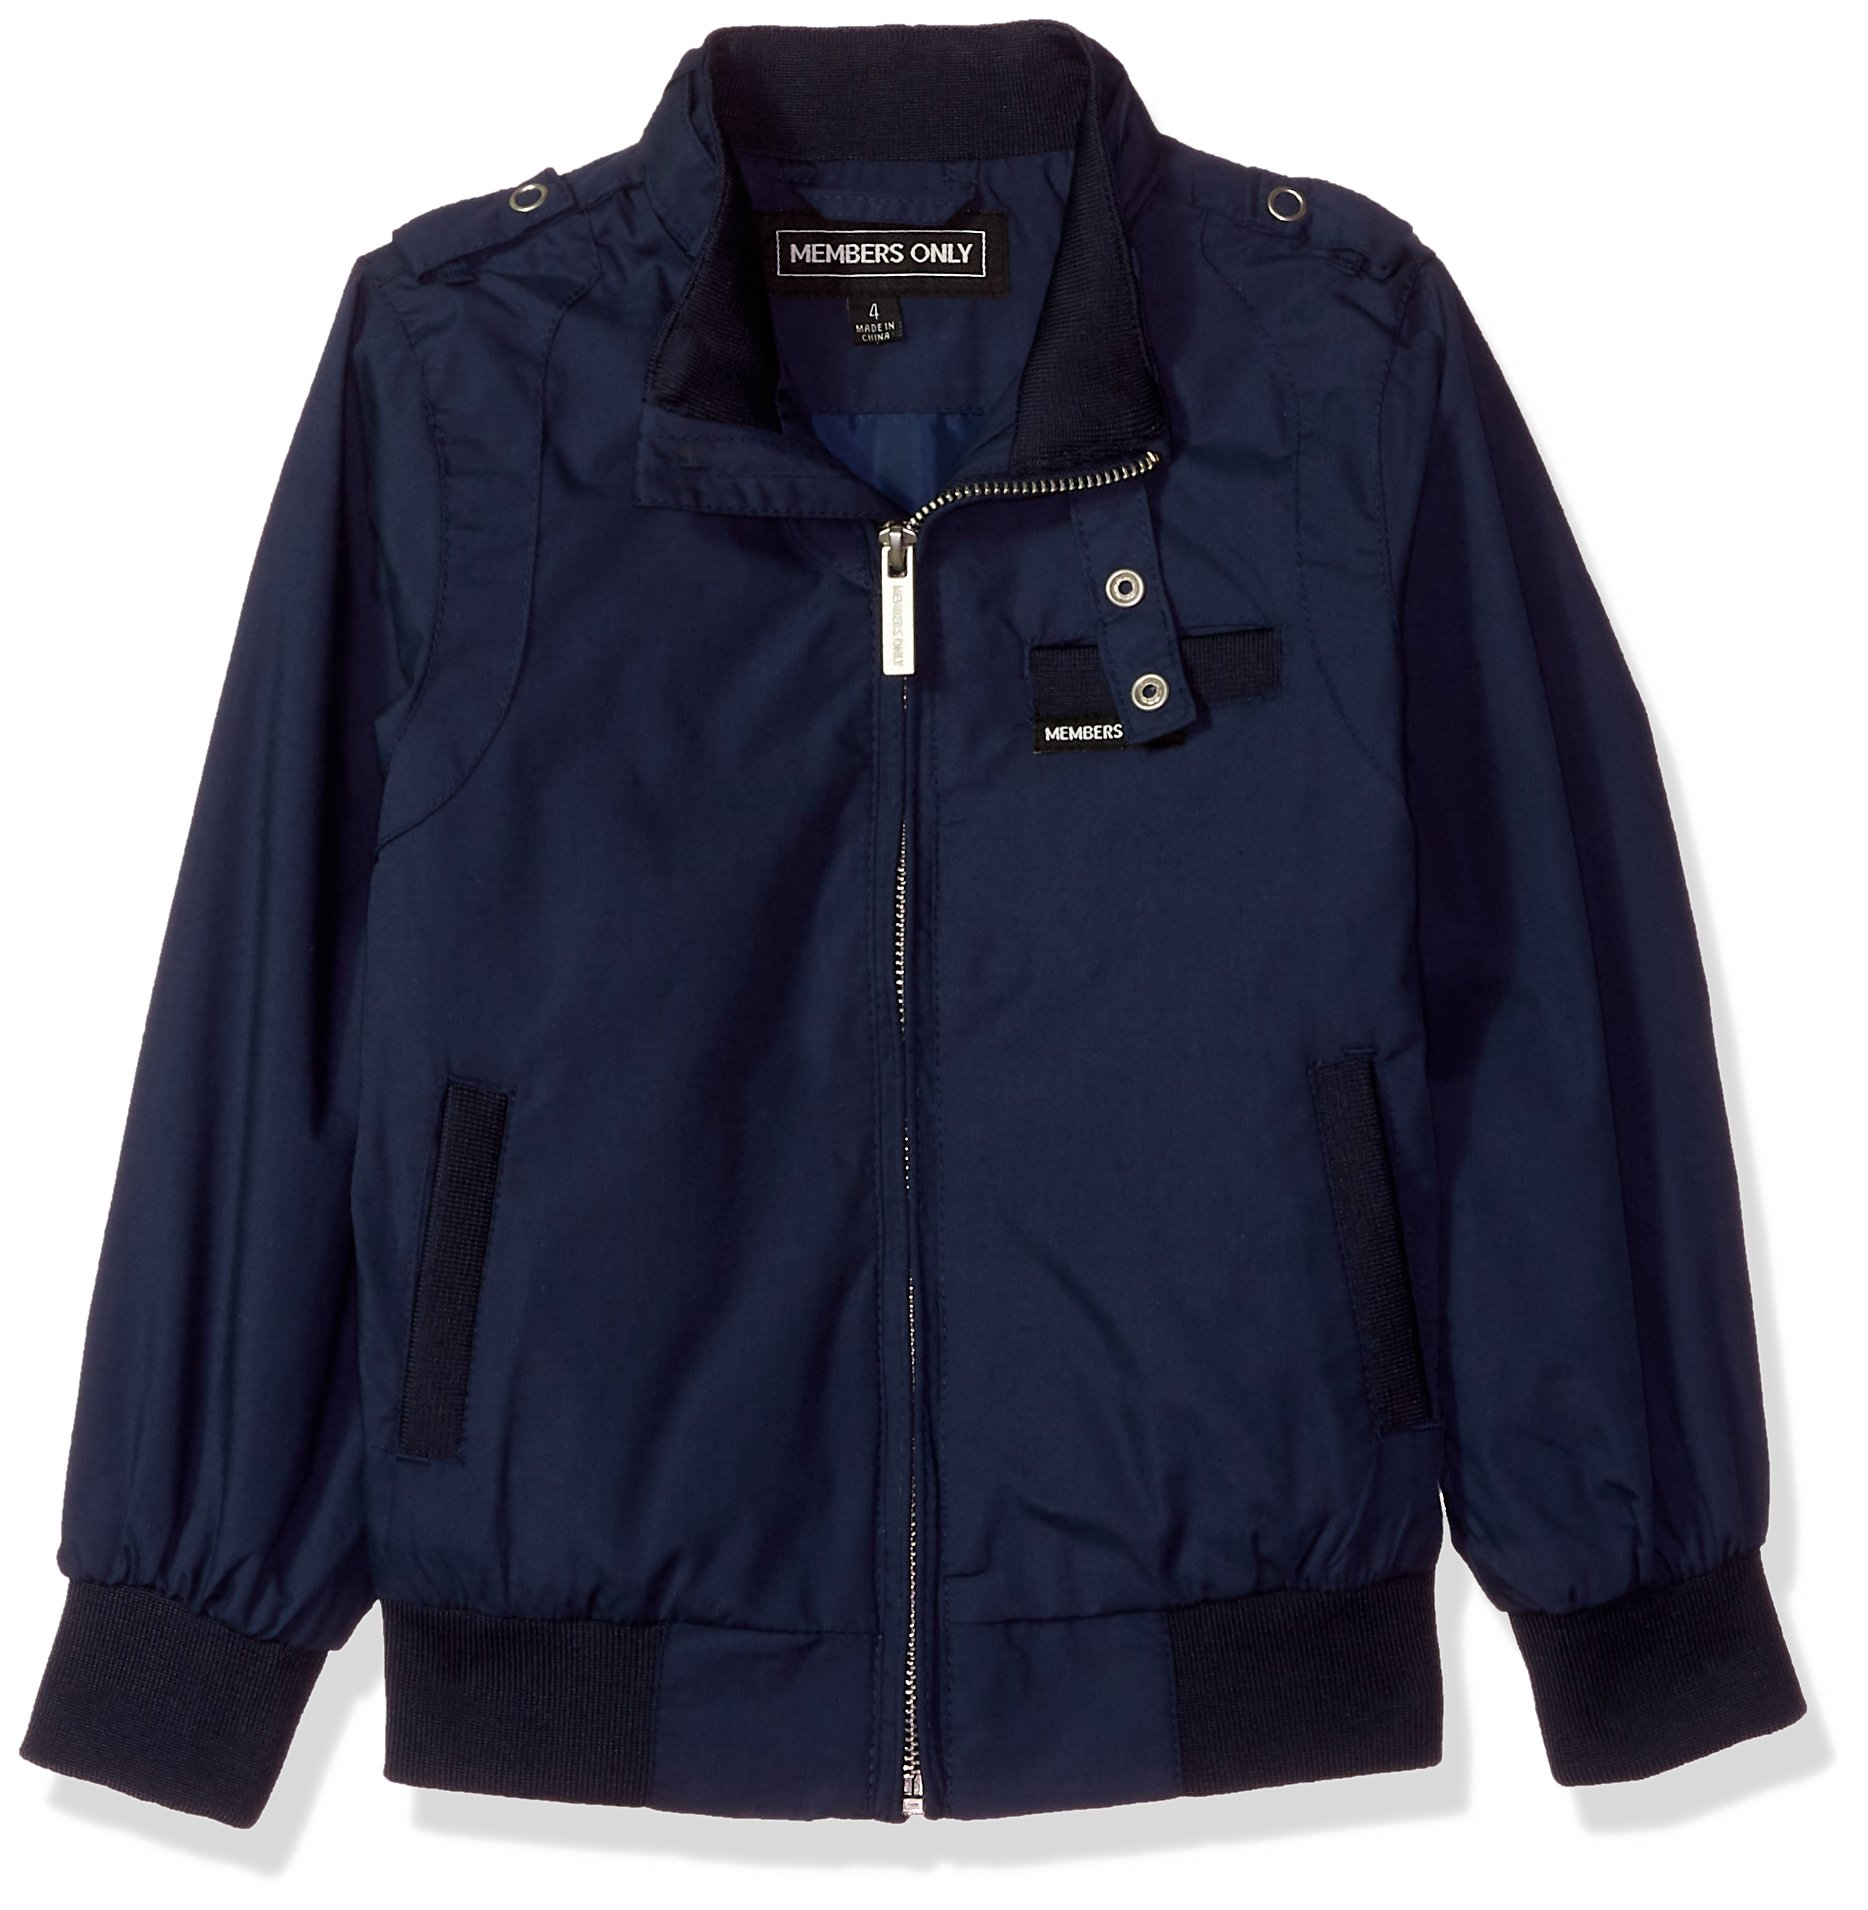 Members Only Little Boy's Iconic Racer Jacket Outerwear, Navy, 6